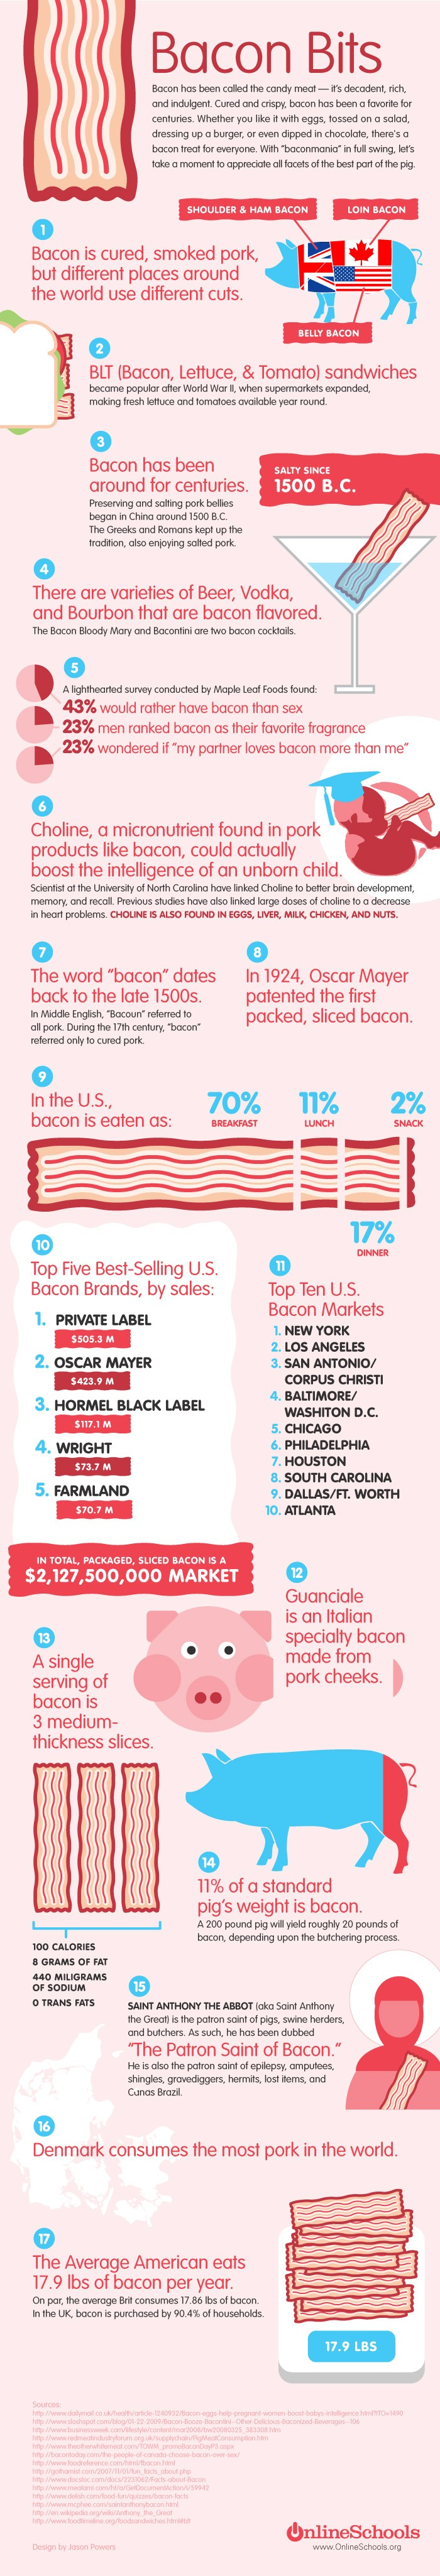 In Praise of Bacon Bits - Infographic